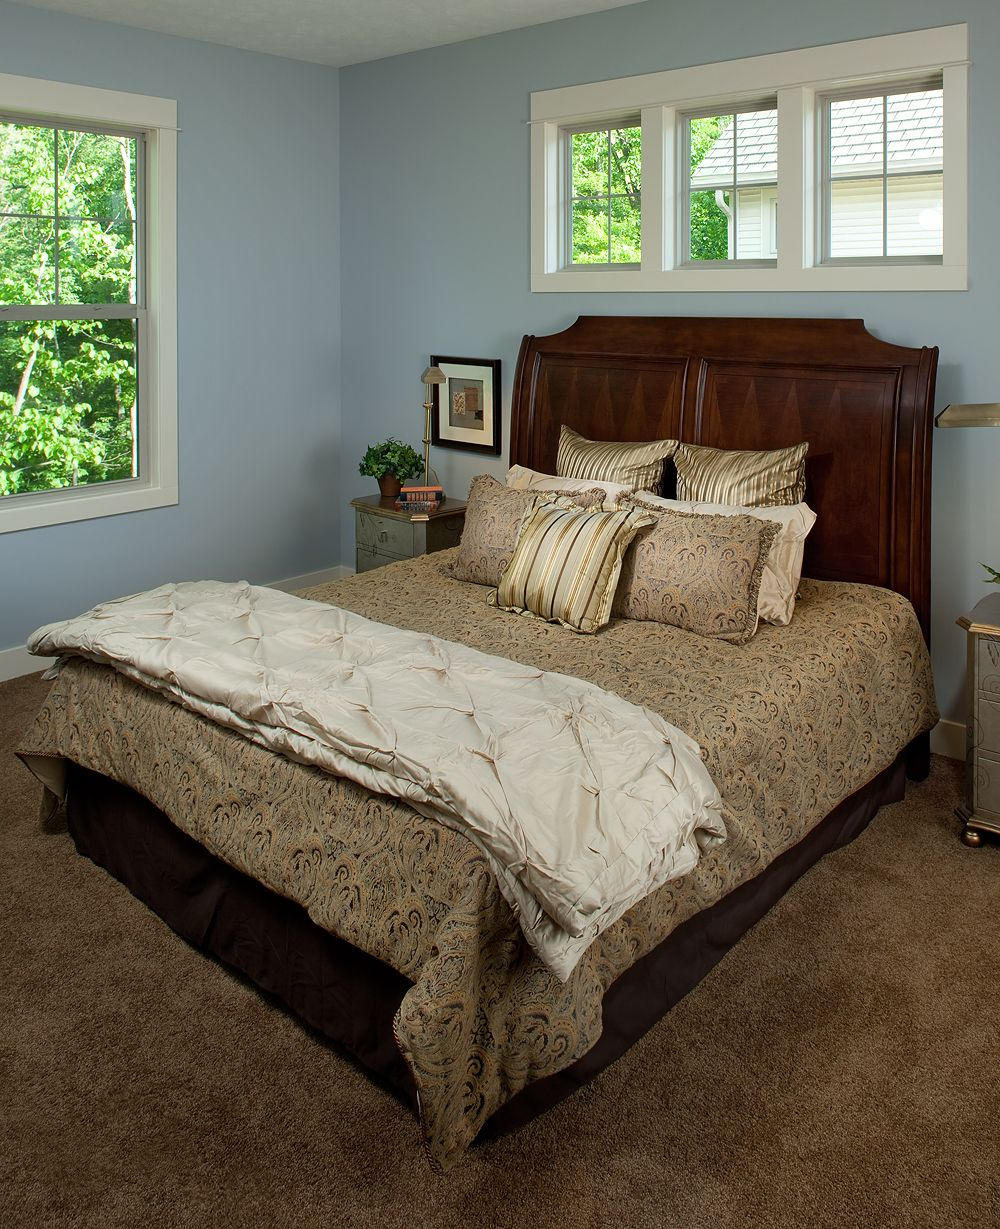 Home Room Addition Ideas: Home, Home Remodeling, Room Additions